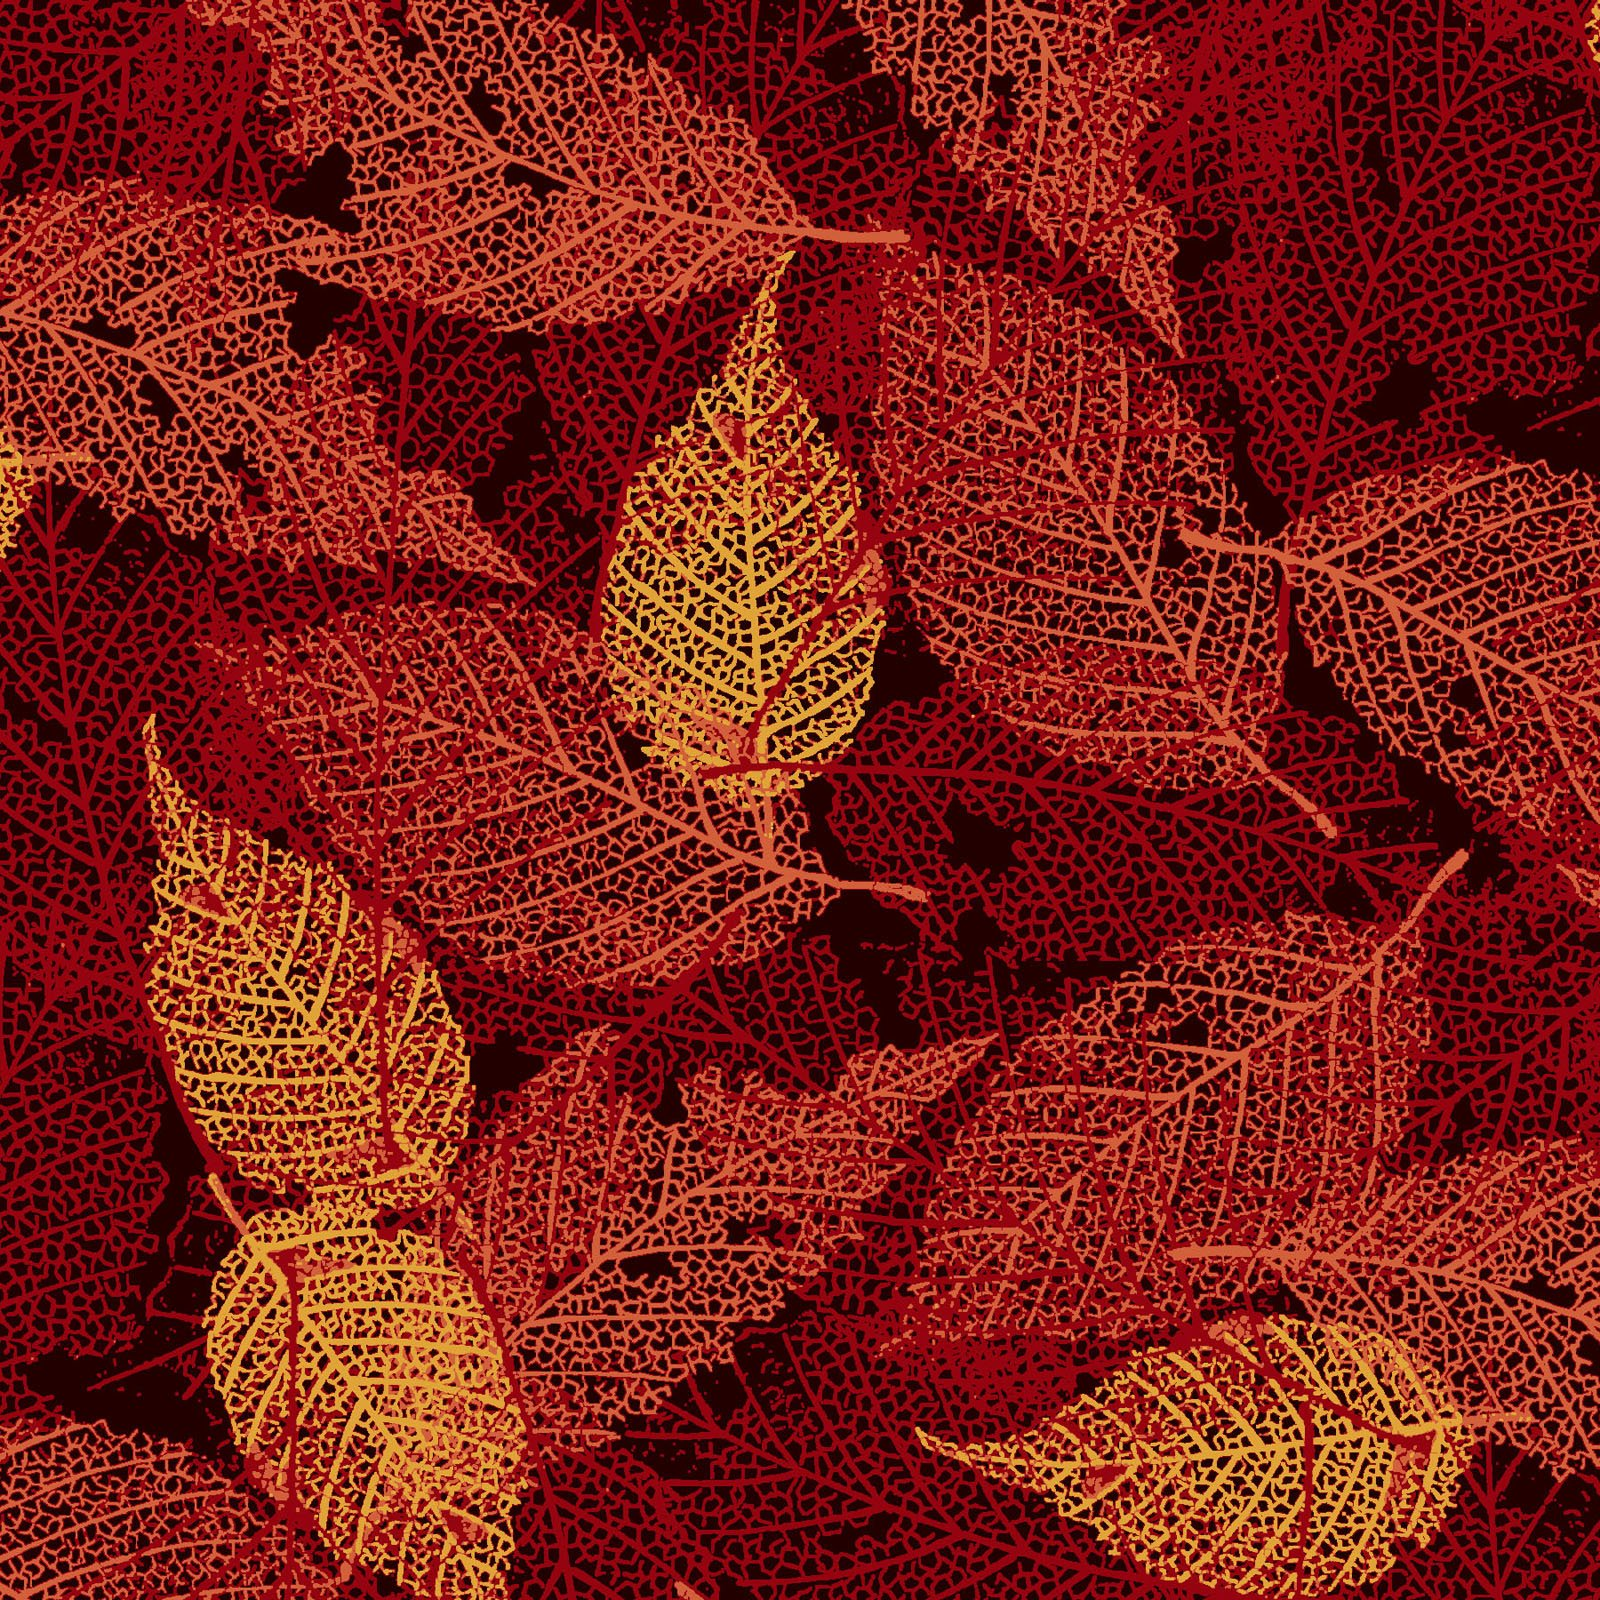 FOLI-4478 OR - FOLIAGE BY P&B BOUTIQUE TEXTURE LEAVES ORANGE - ARRIVING IN MAY 2021